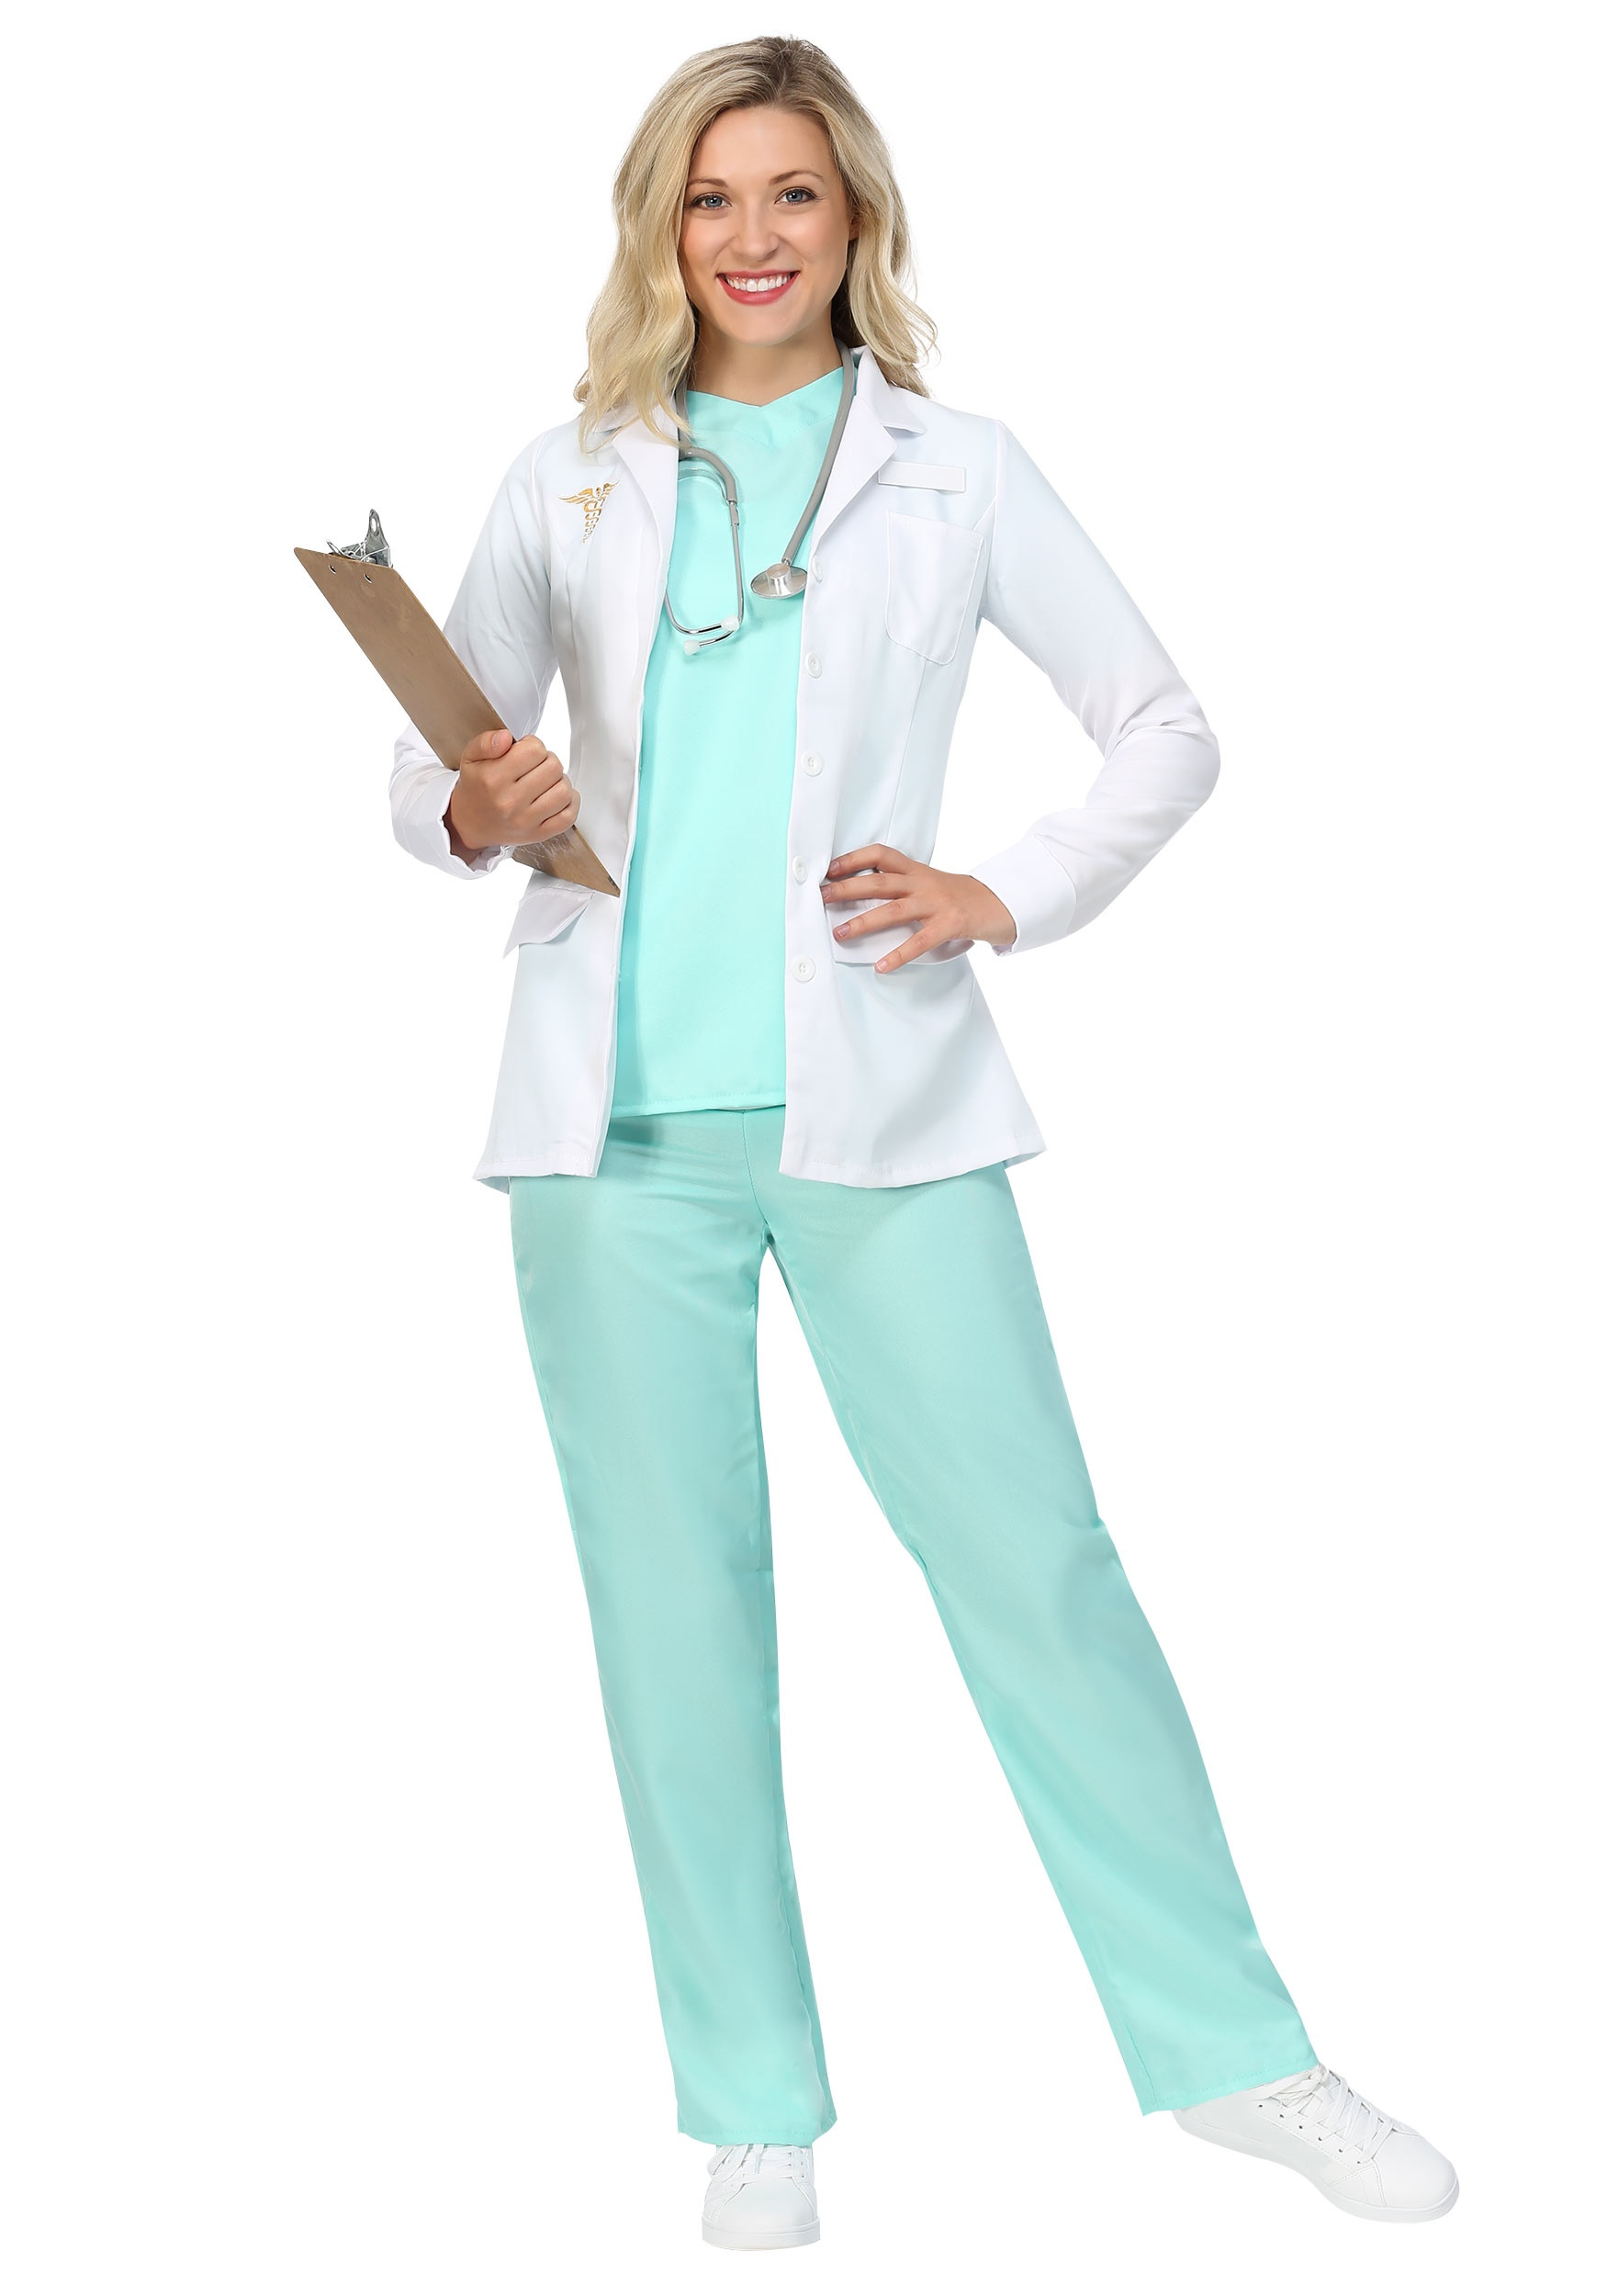 98dc42ddc3a Doctor Costumes & Surgeon Outfits - HalloweenCostumes.com